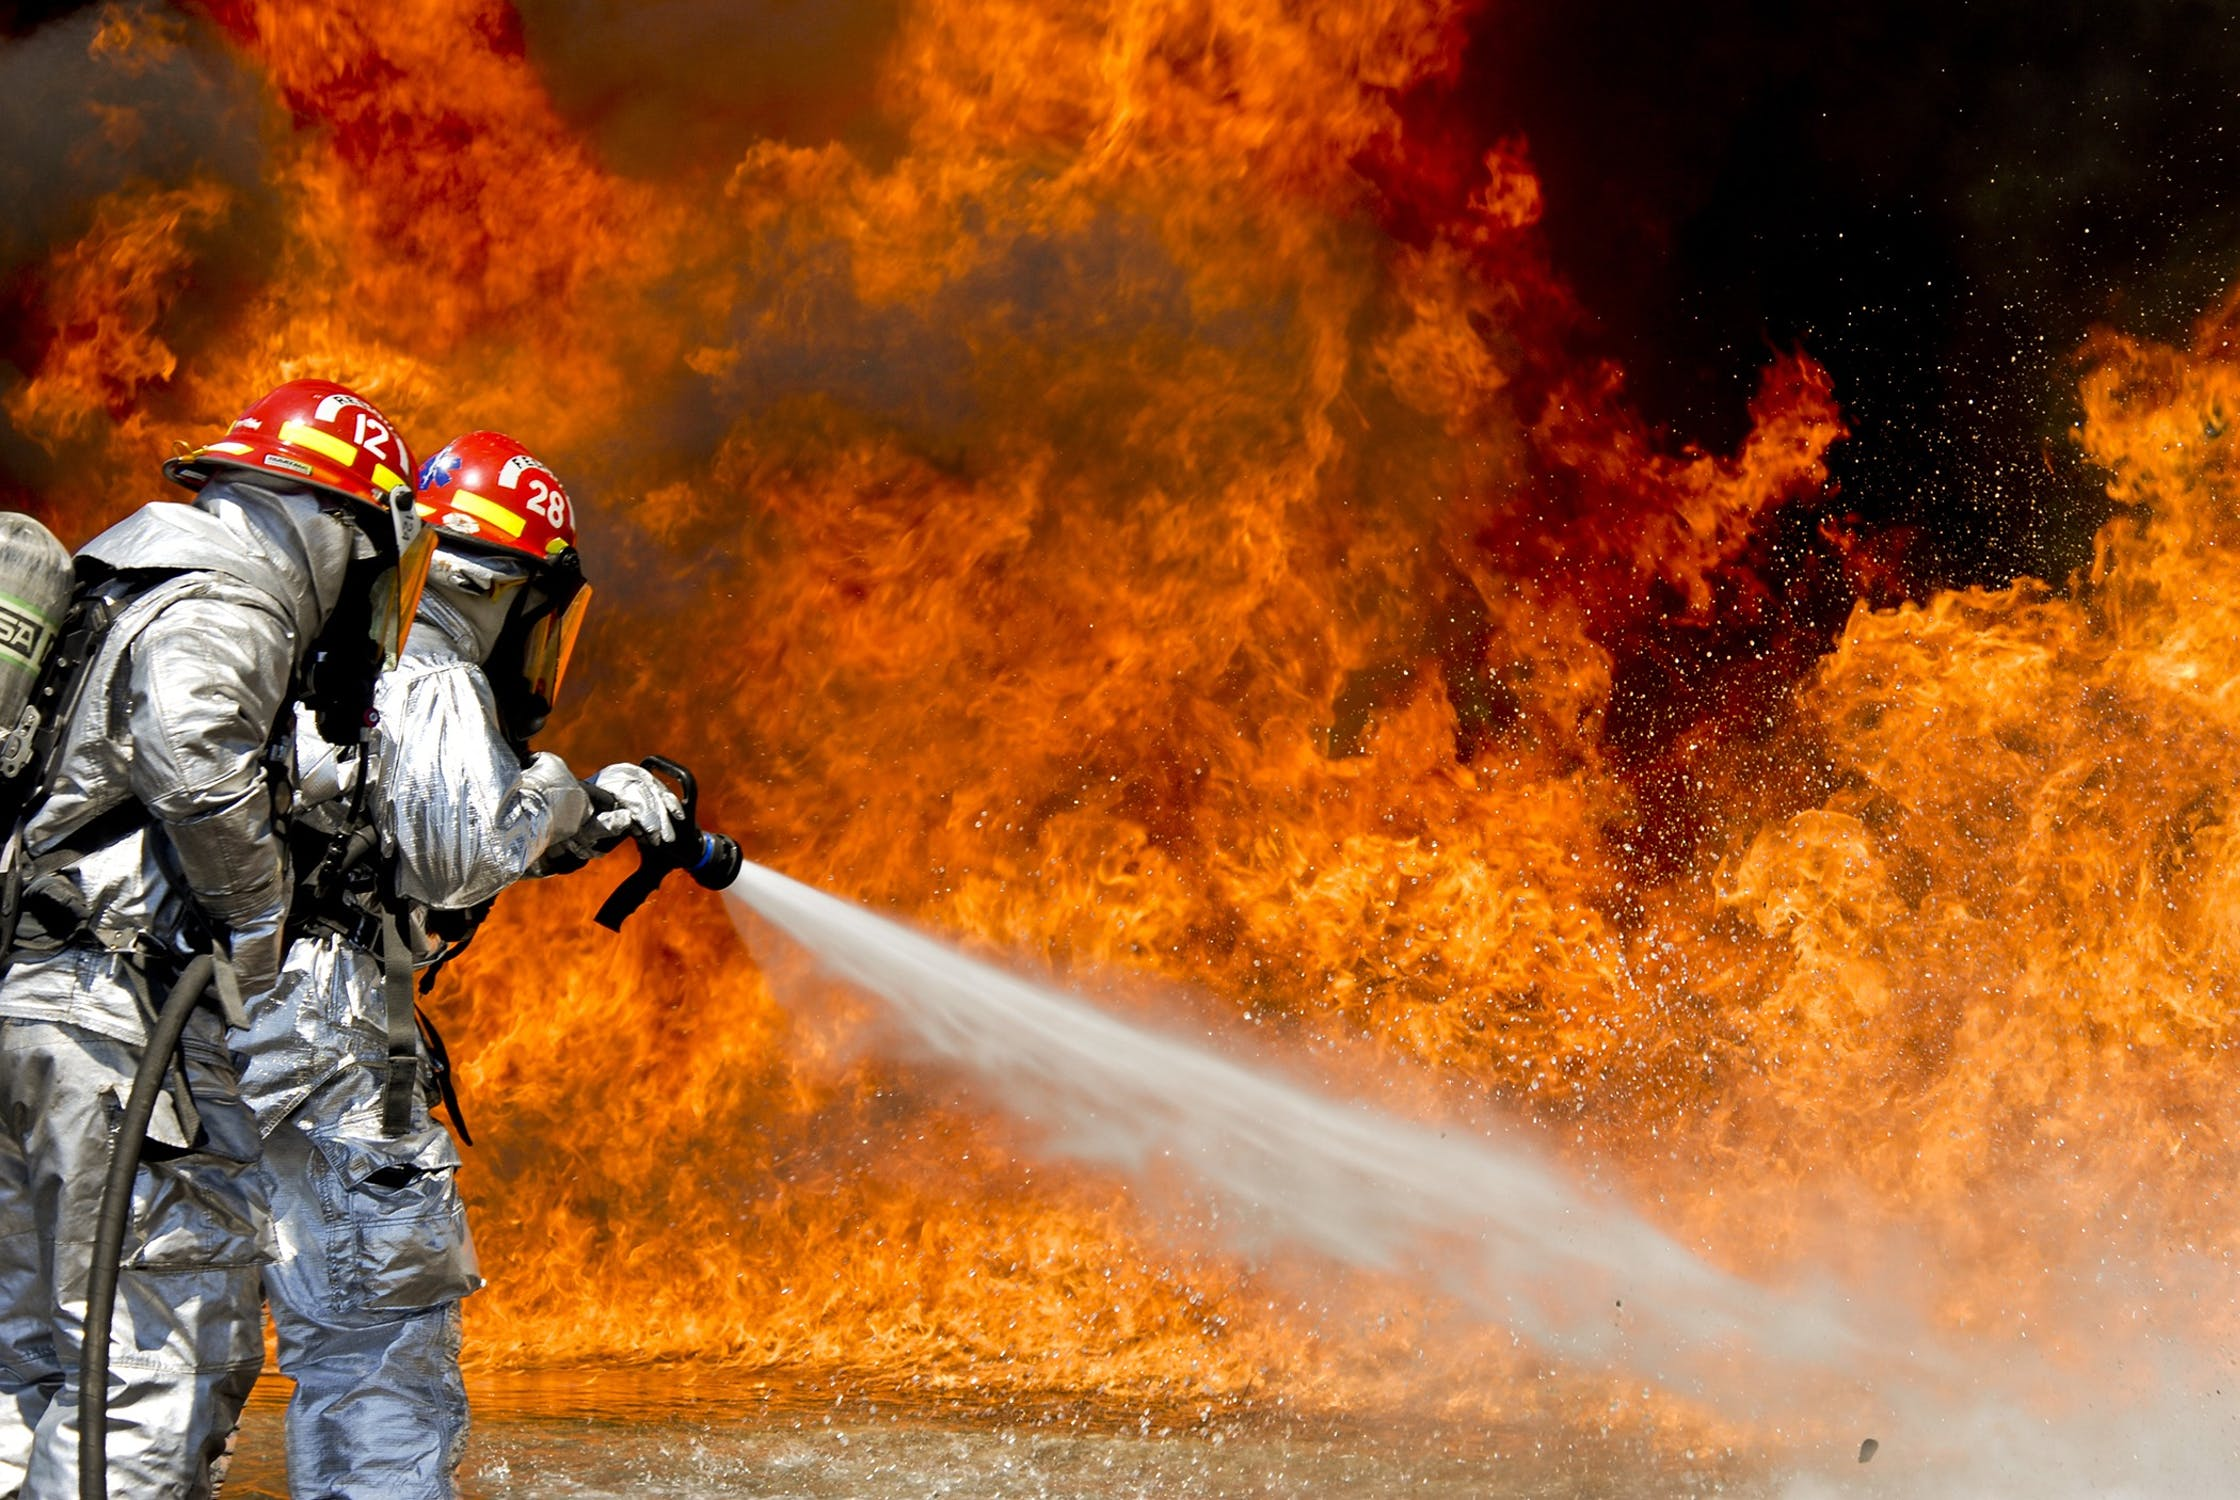 Red warning for extreme temperature and fire risks in 13 districts in Portugal